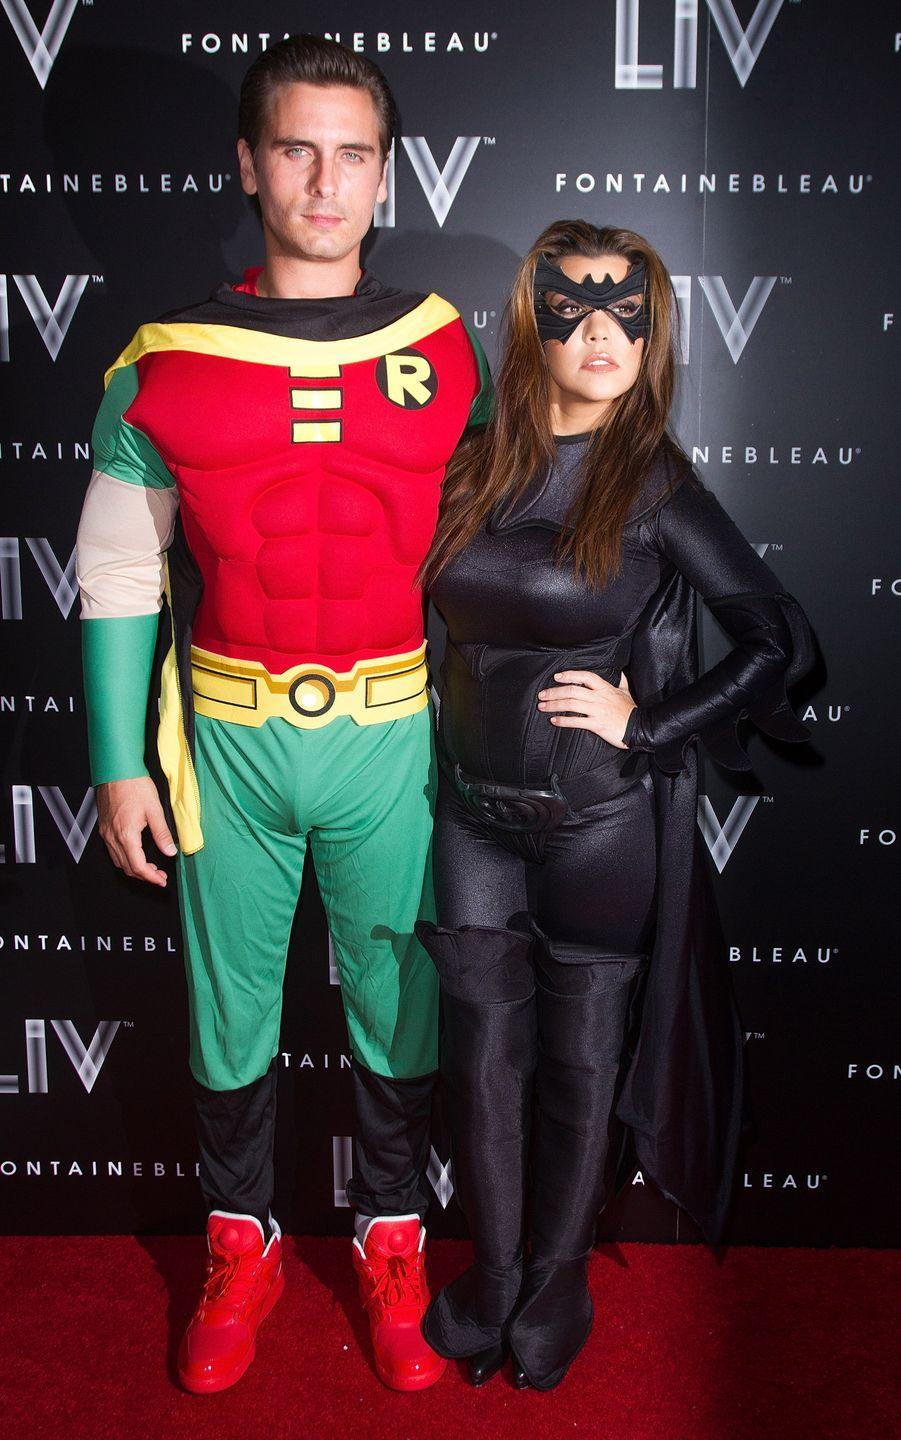 <p>The former couple were <em>super </em>into their costume in 2012. Interesting choice for Kourtney to be Batman. Guess we know who runs the show...</p>